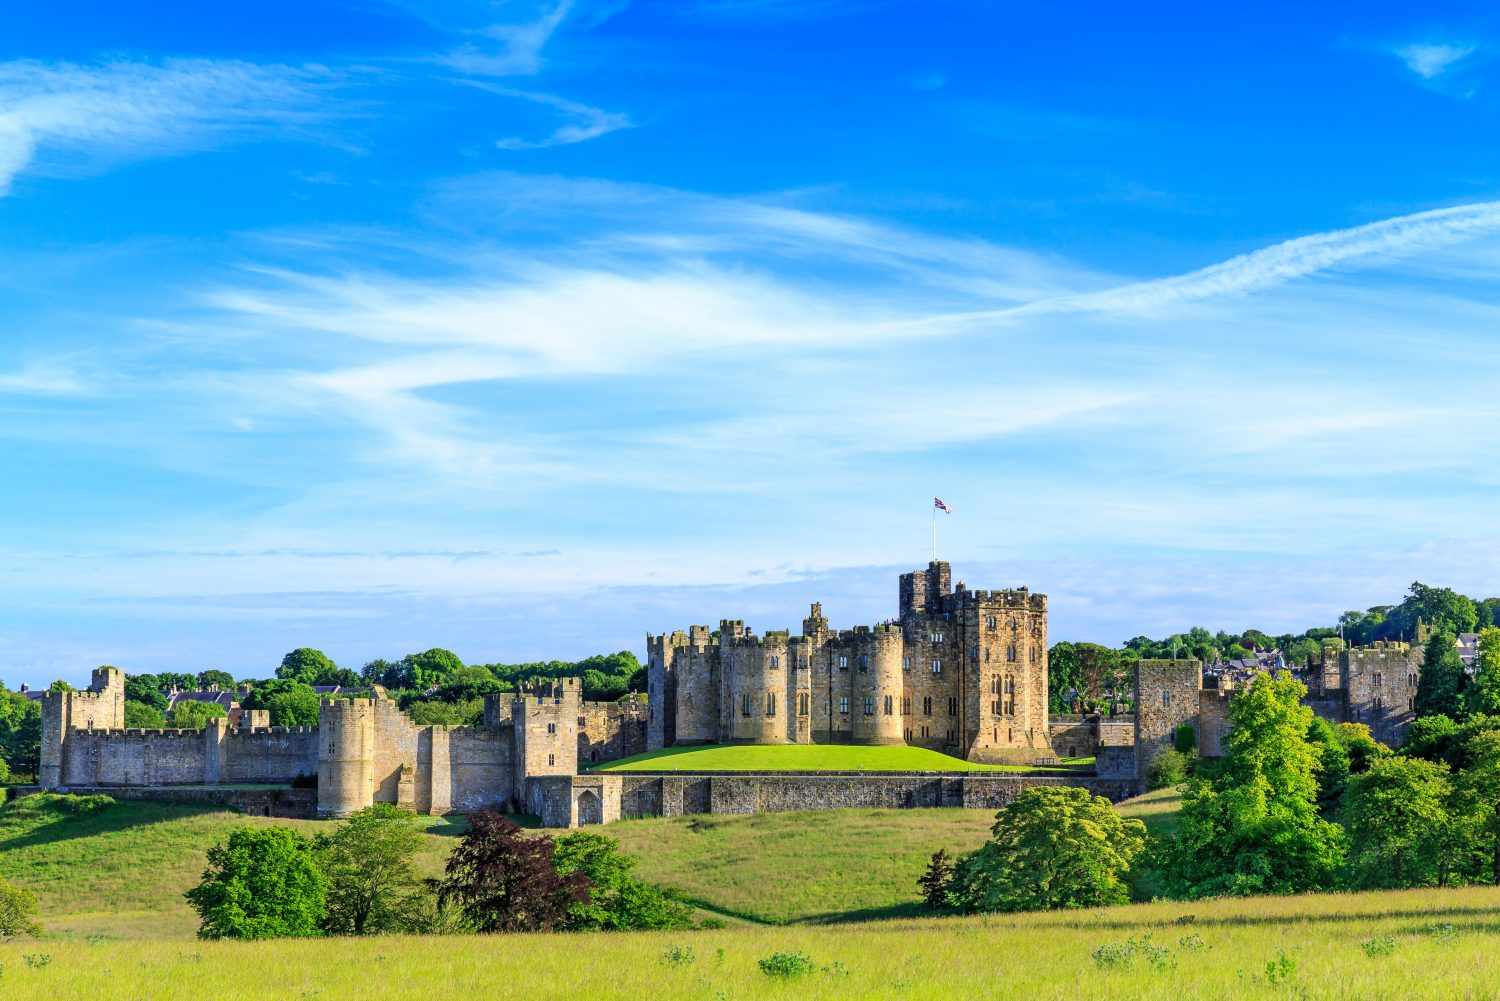 An exterior shot of Alnwick Castle in Northumberland